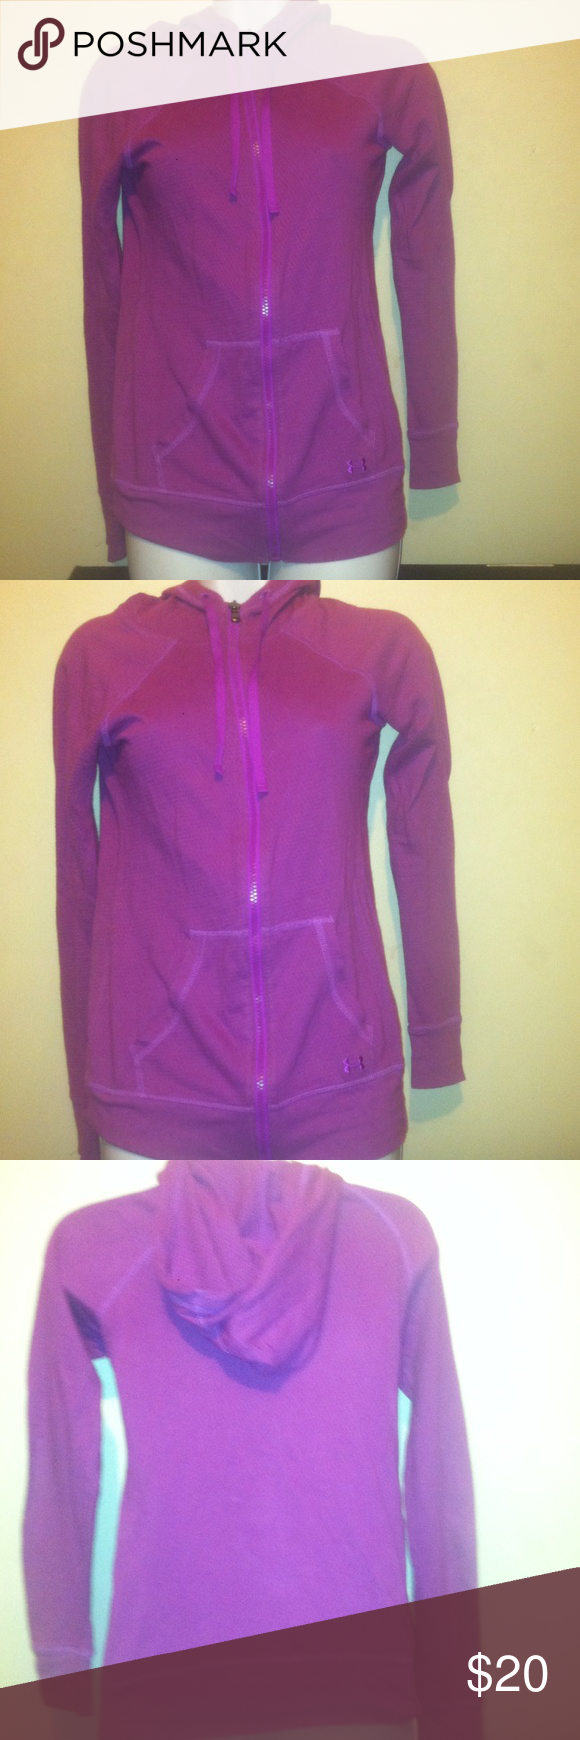 Under Armour hoodie size xs Under Armour  women's hoodie size xs Under Armour Tops Sweatshirts & Hoodies